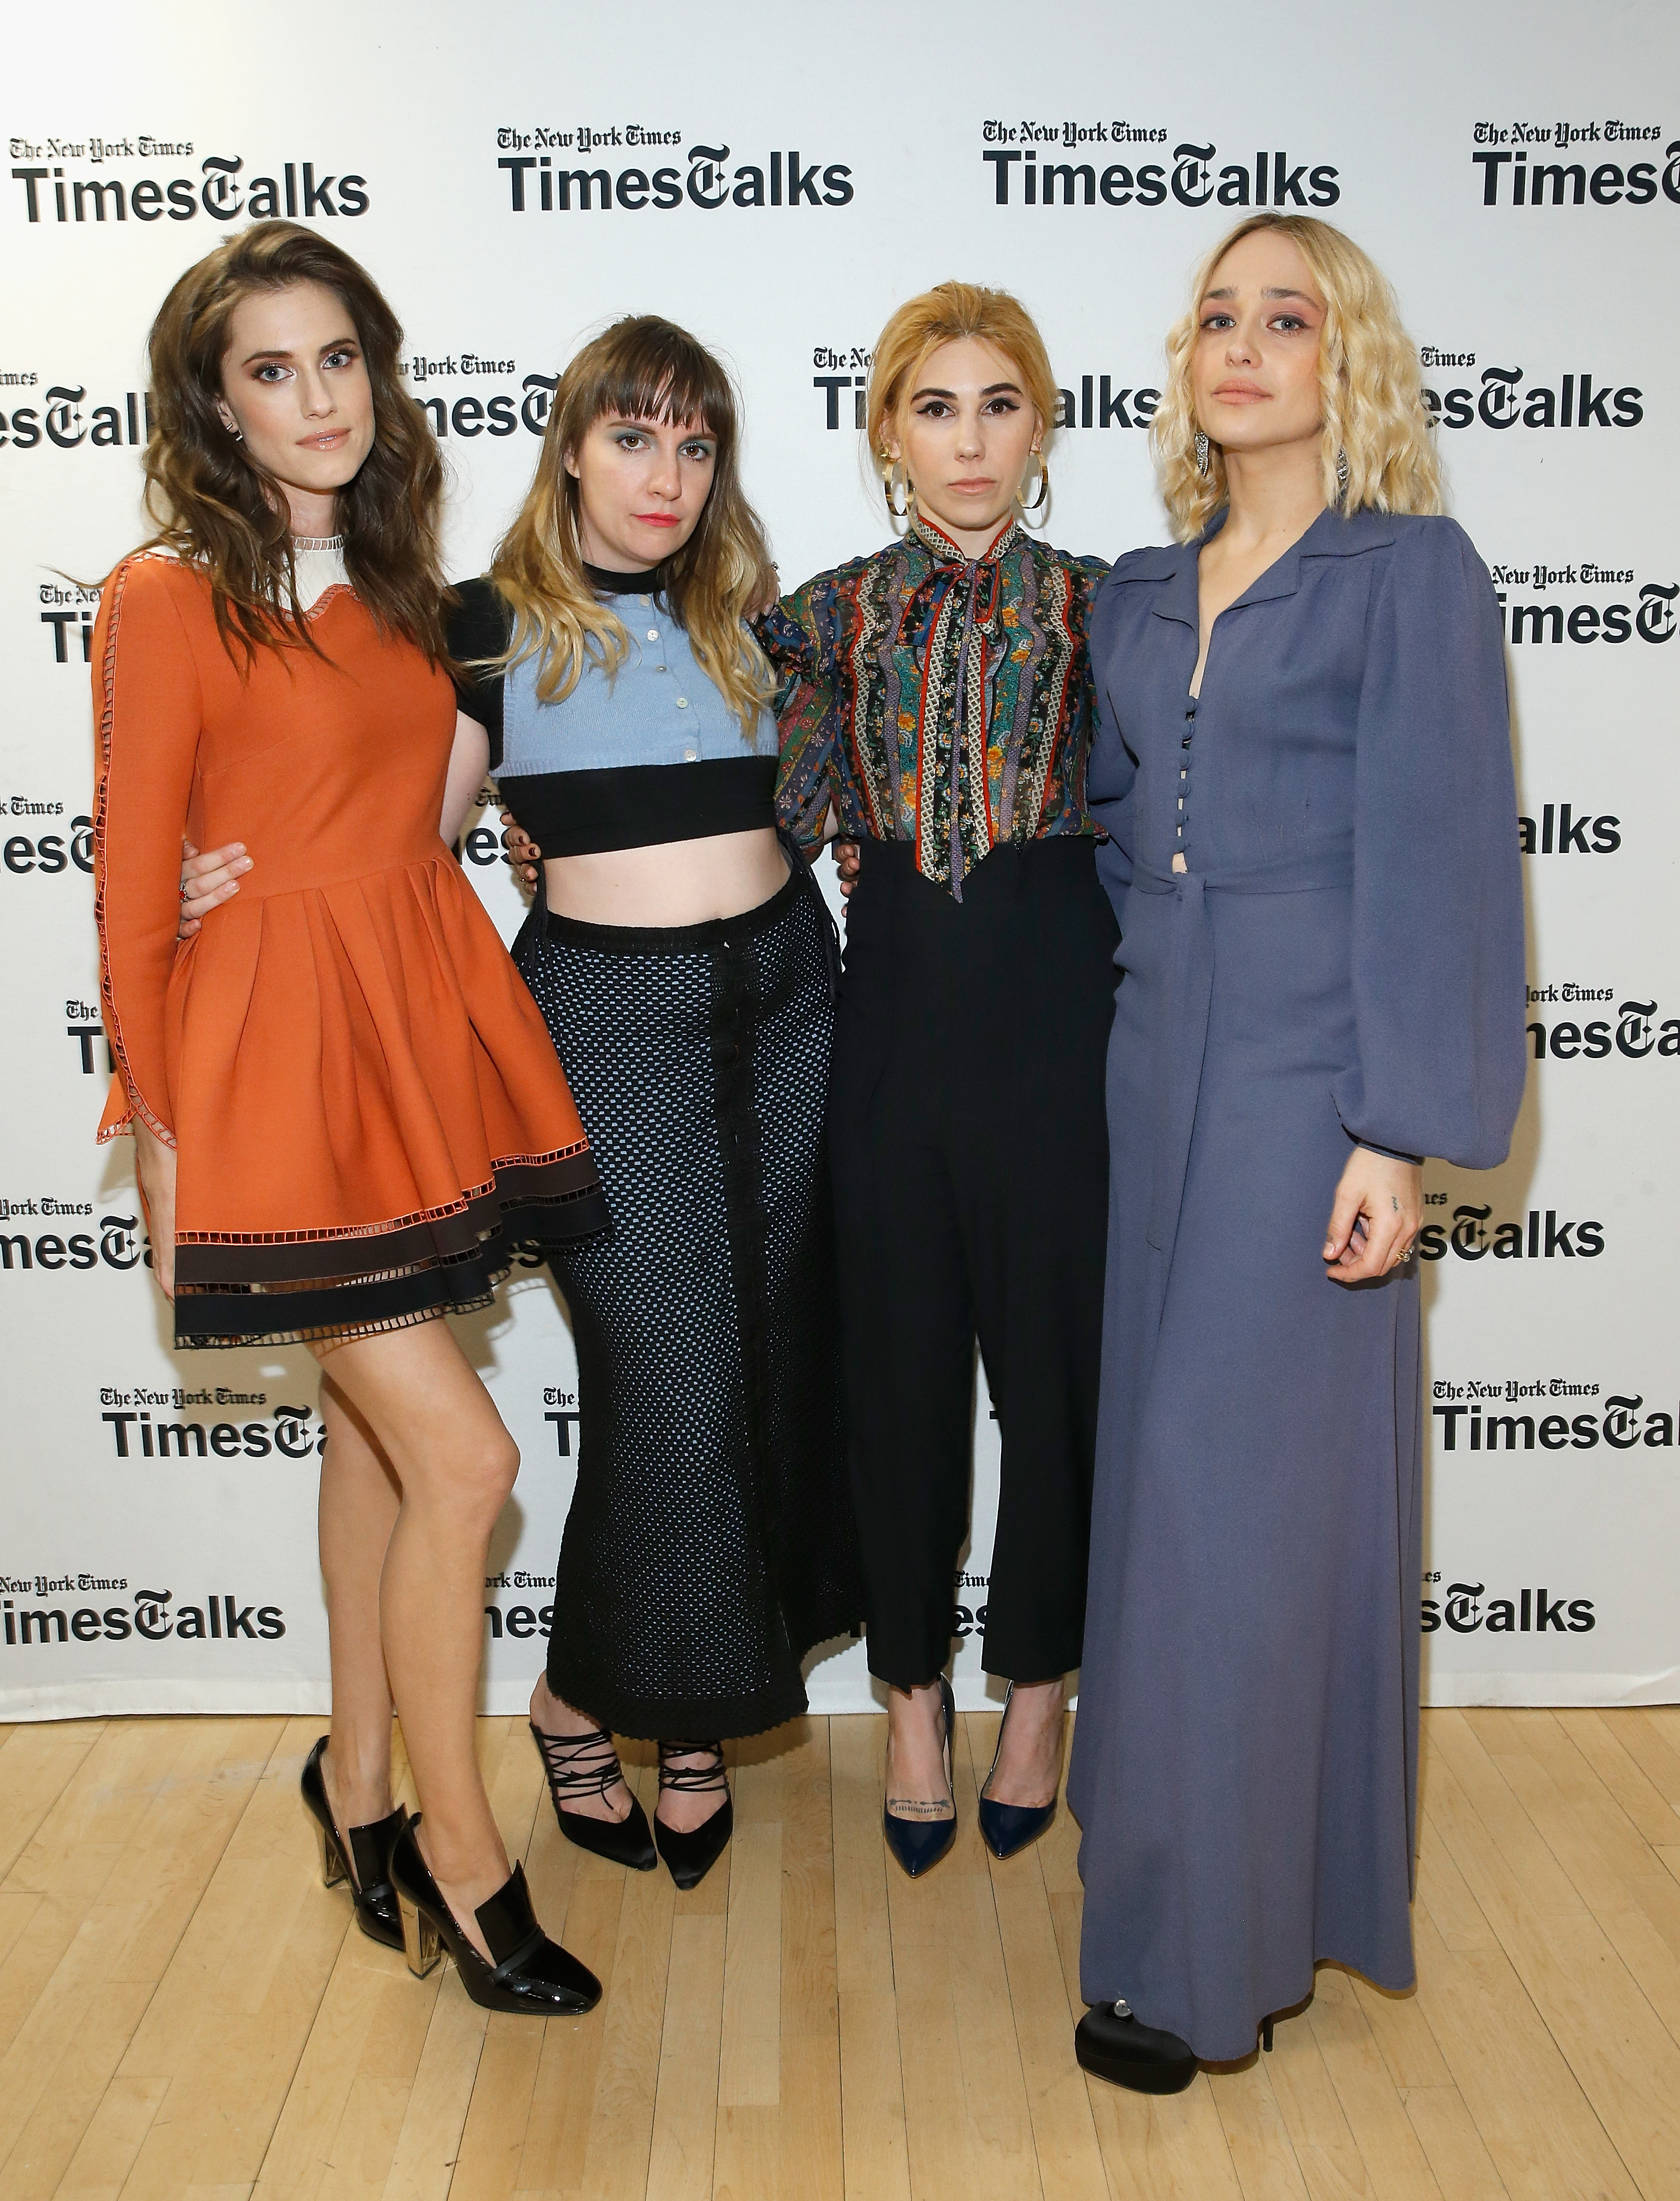 TimesTalks: A Final Farewell To The Cast Of HBO's 'Girls'